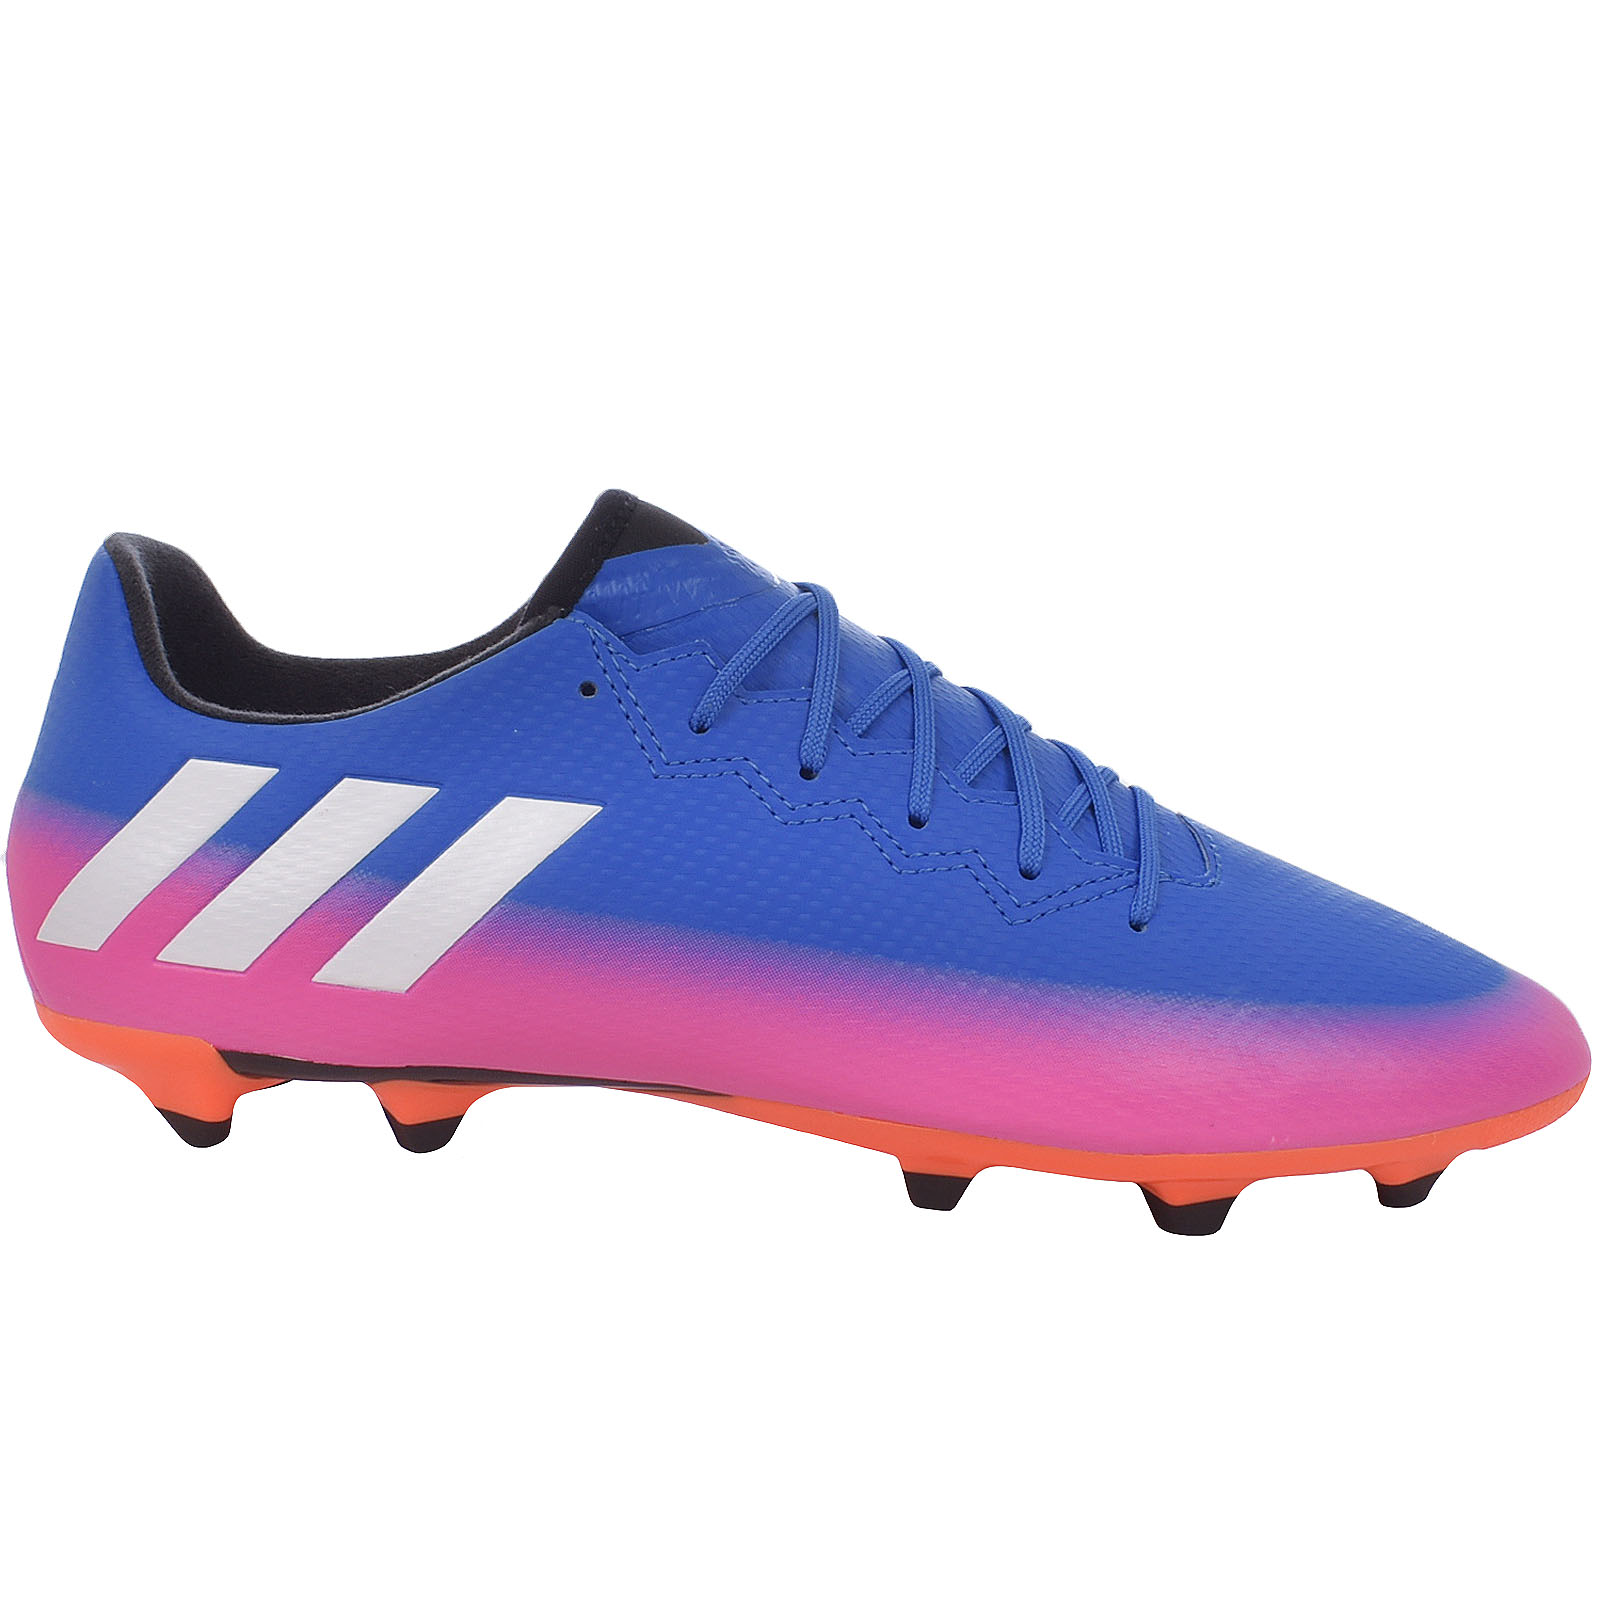 098356efb Details about adidas Performance Mens Messi 16.3 FG Soccer Training  Football Boots - Blue